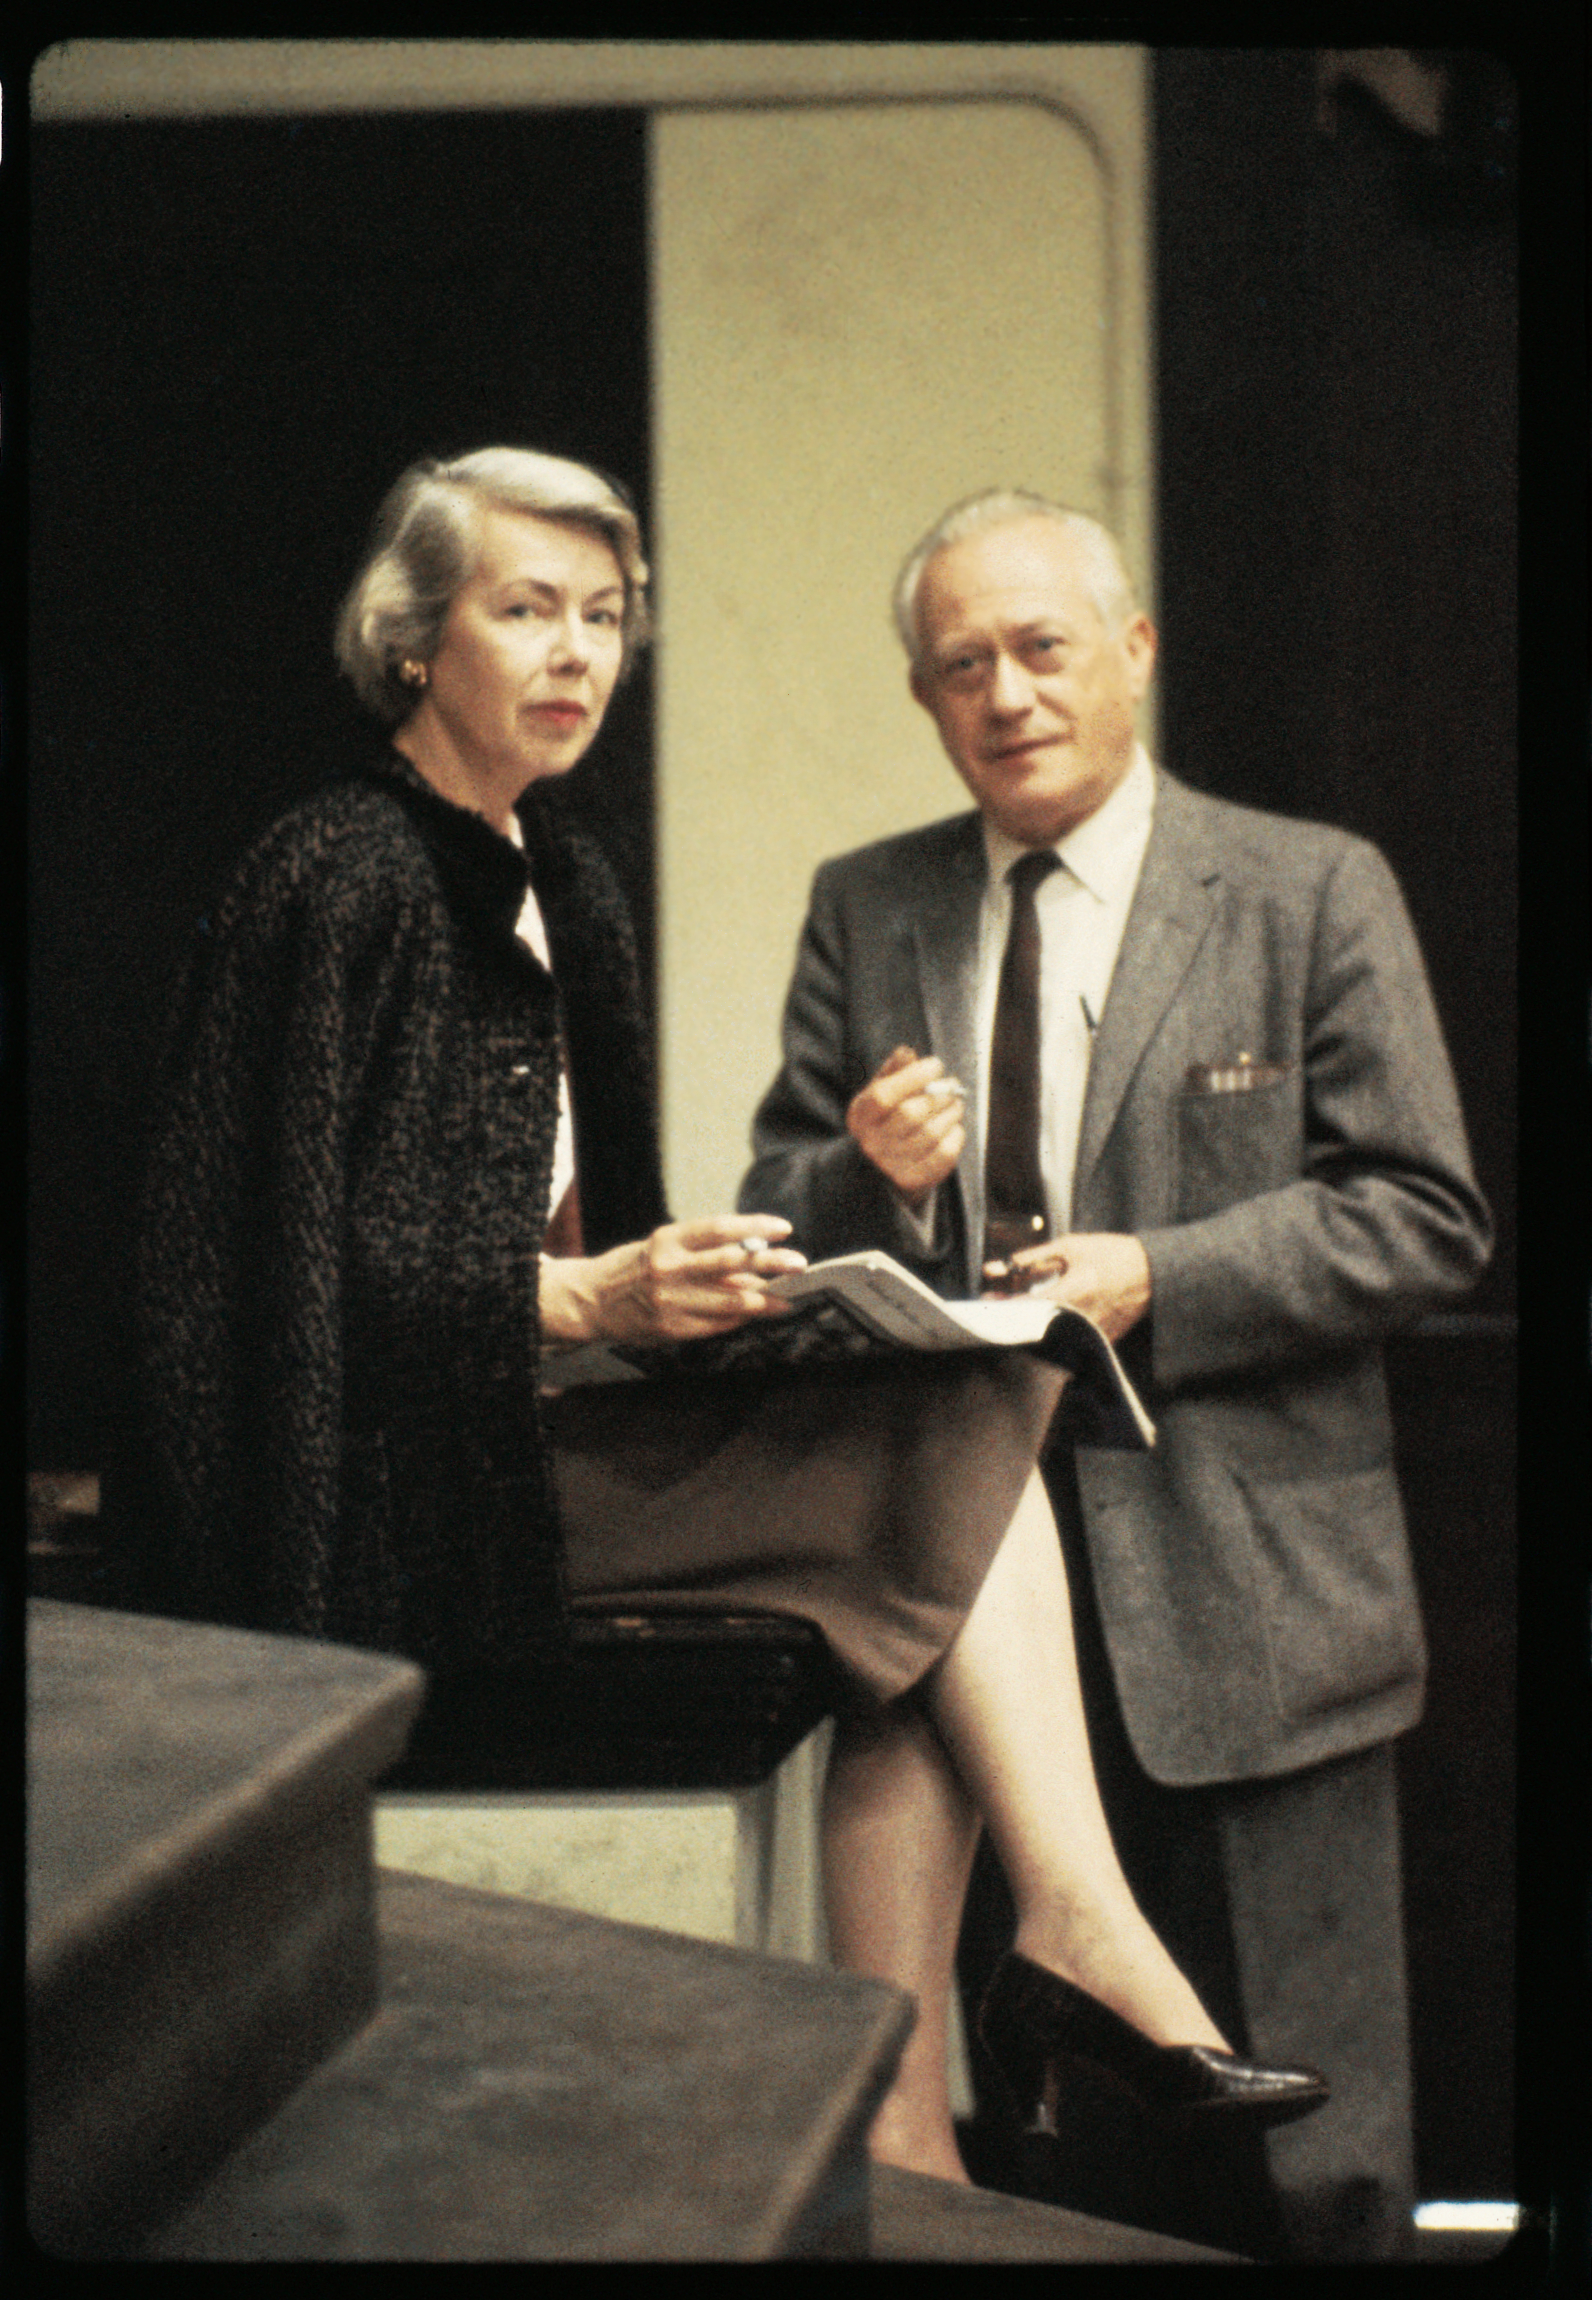 Lorser Feitelson and Helen Lundeberg, c. 1960s